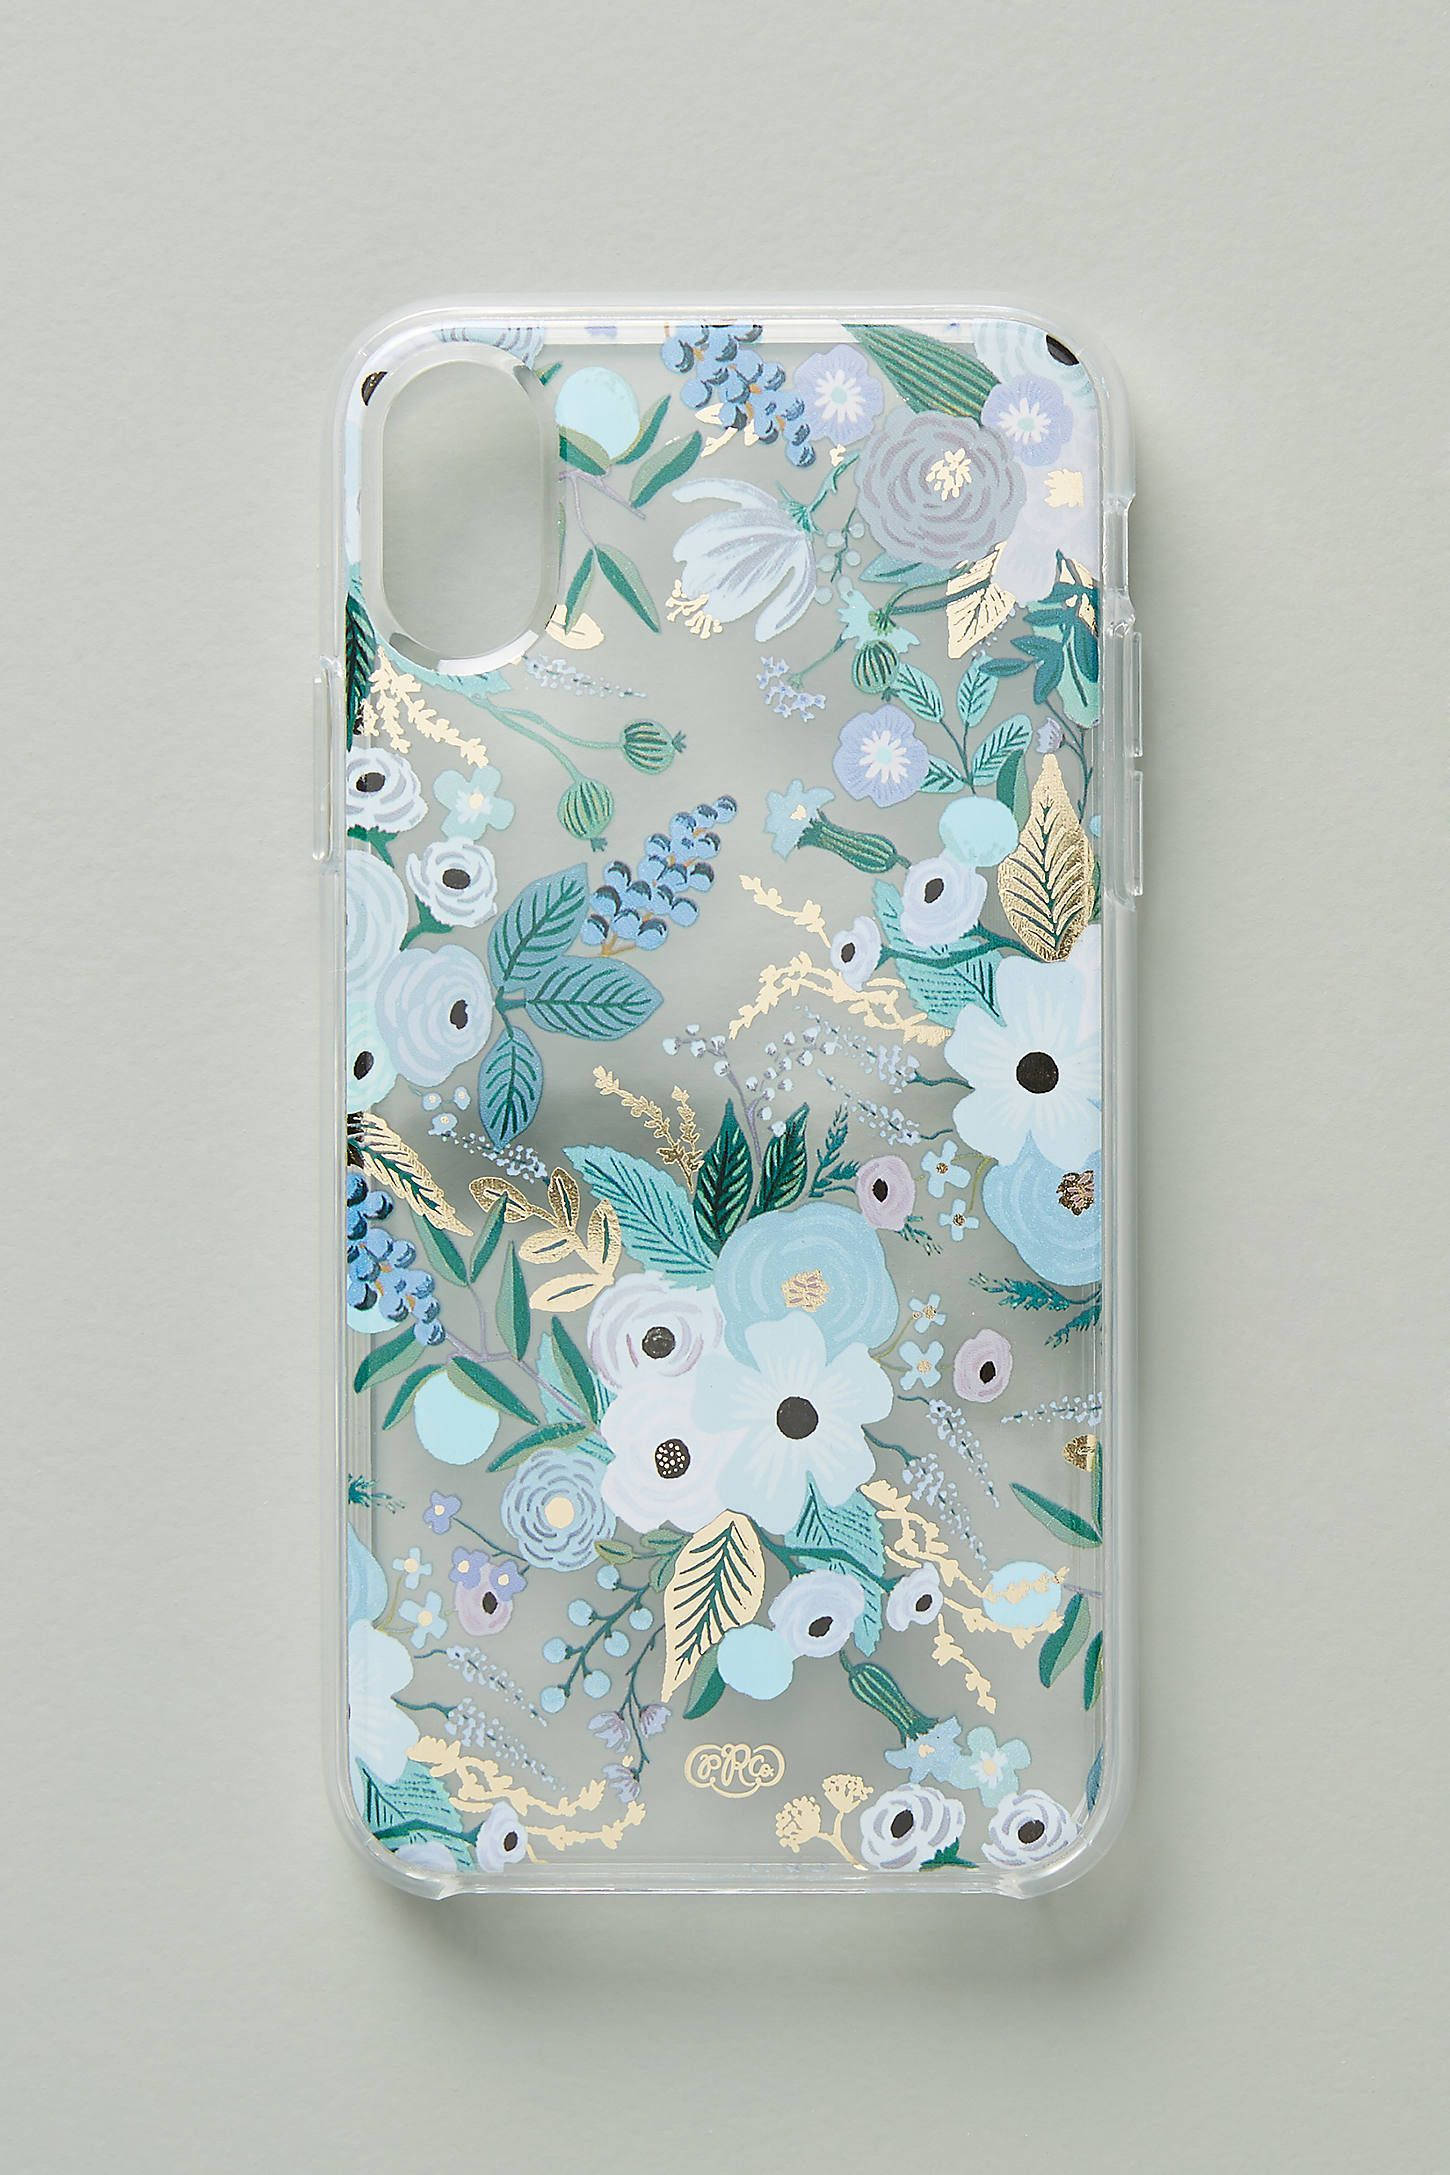 Pin By Iris Cottrell On Phone Cases In 2020 Phone Case Accessories Phone Cases Diy Phone Case